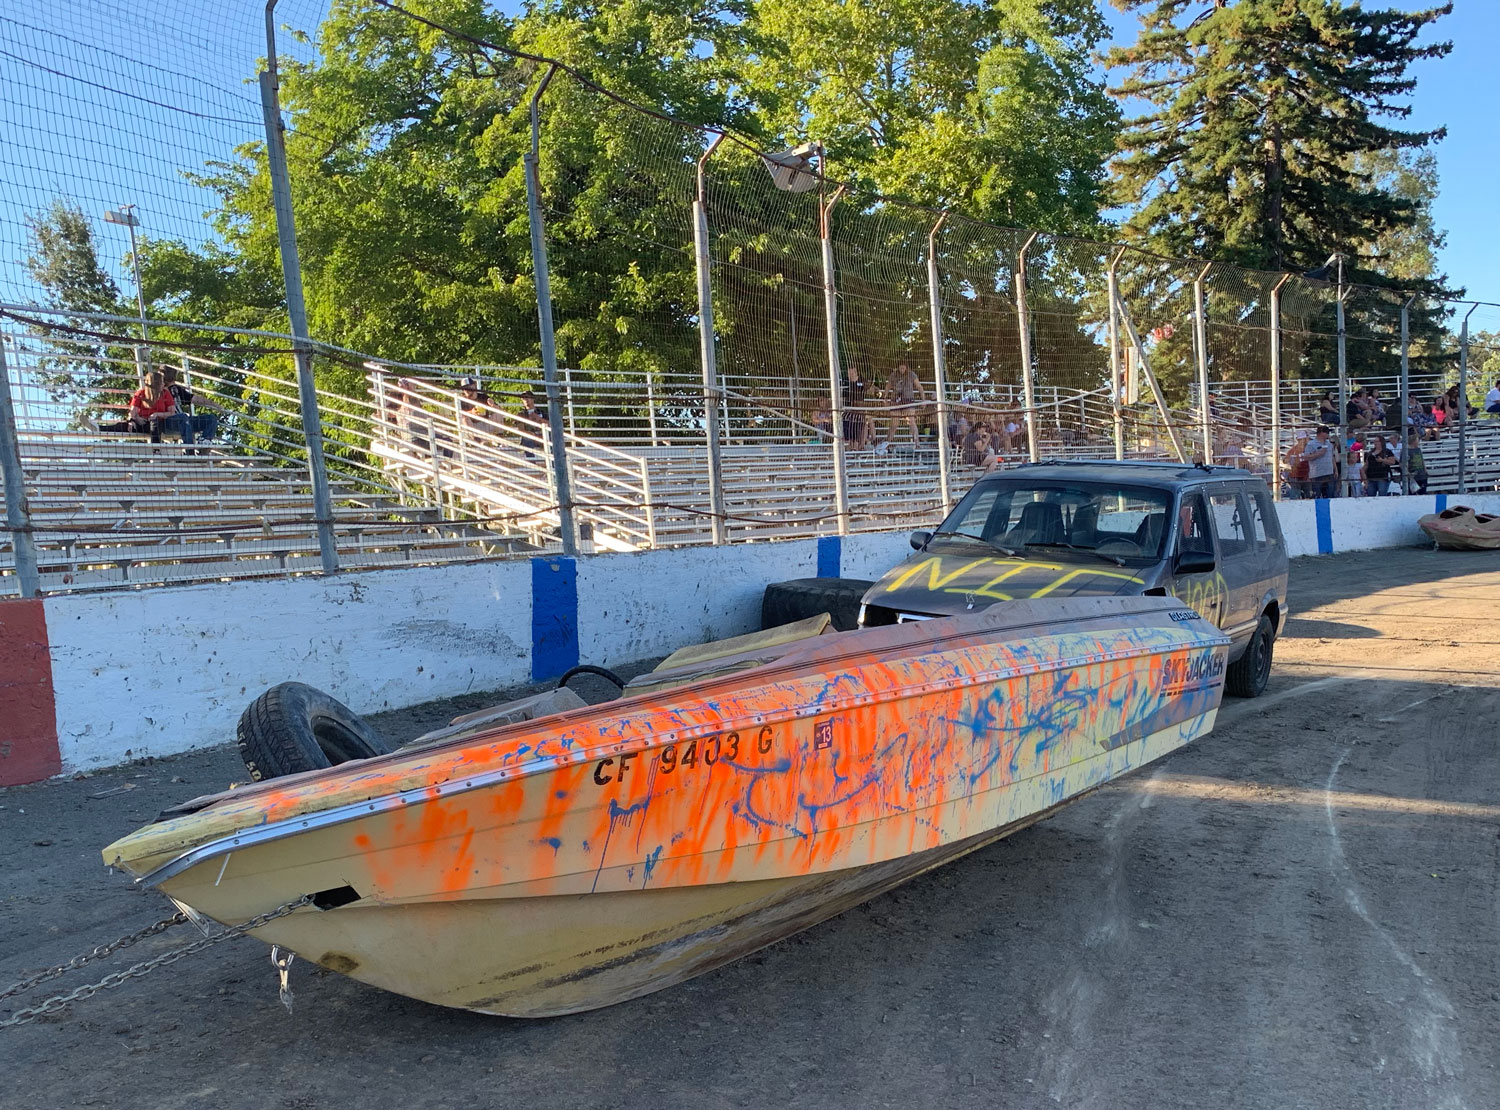 The Curbside boat race machines